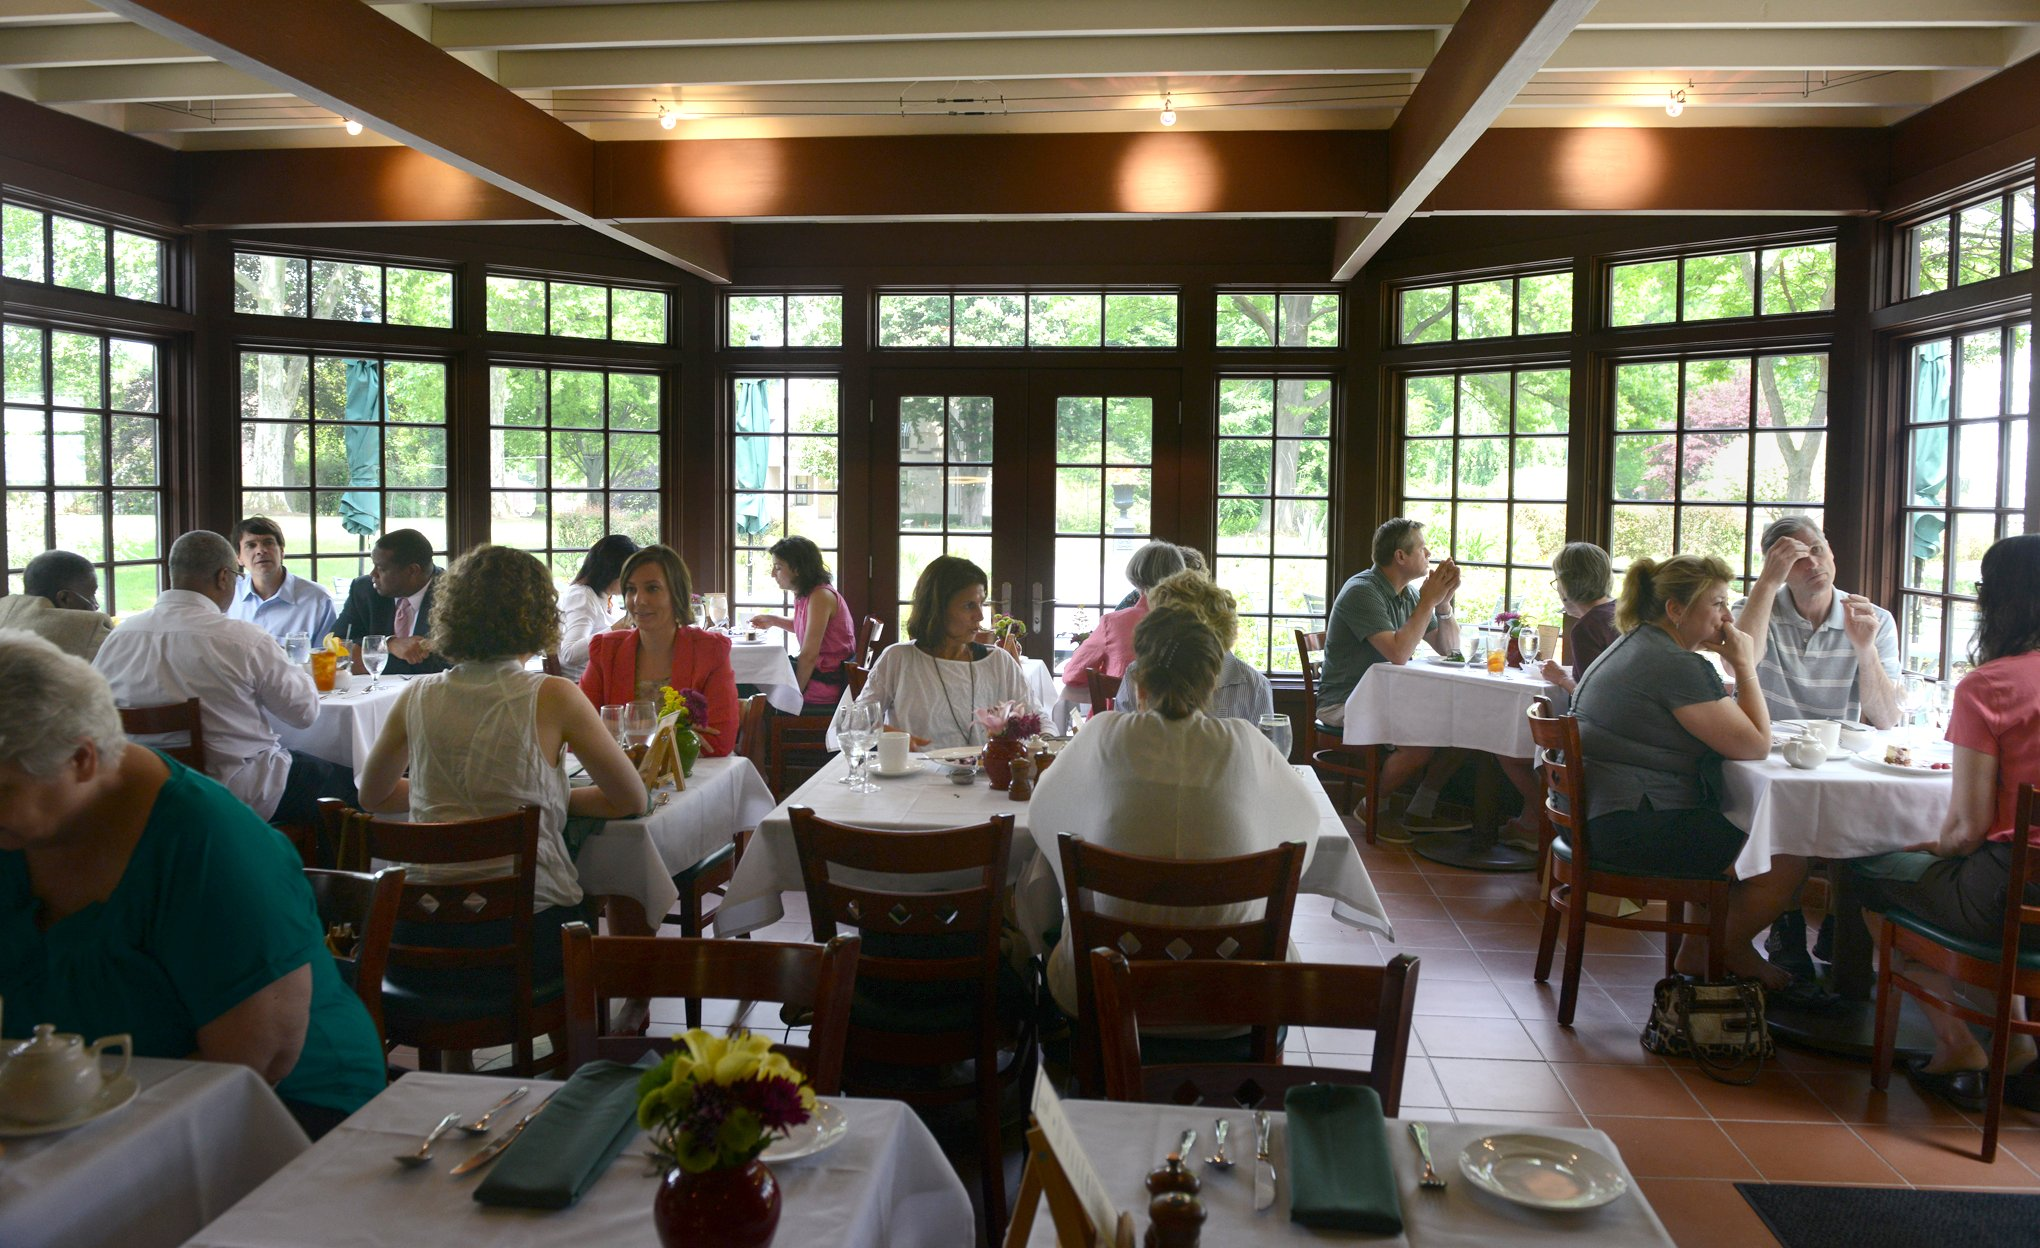 The Cafe at the Frick window view Windows in the dining room at The Cafe at the Frick give diners a view of the gardens and the Frick mansion, Clayton.